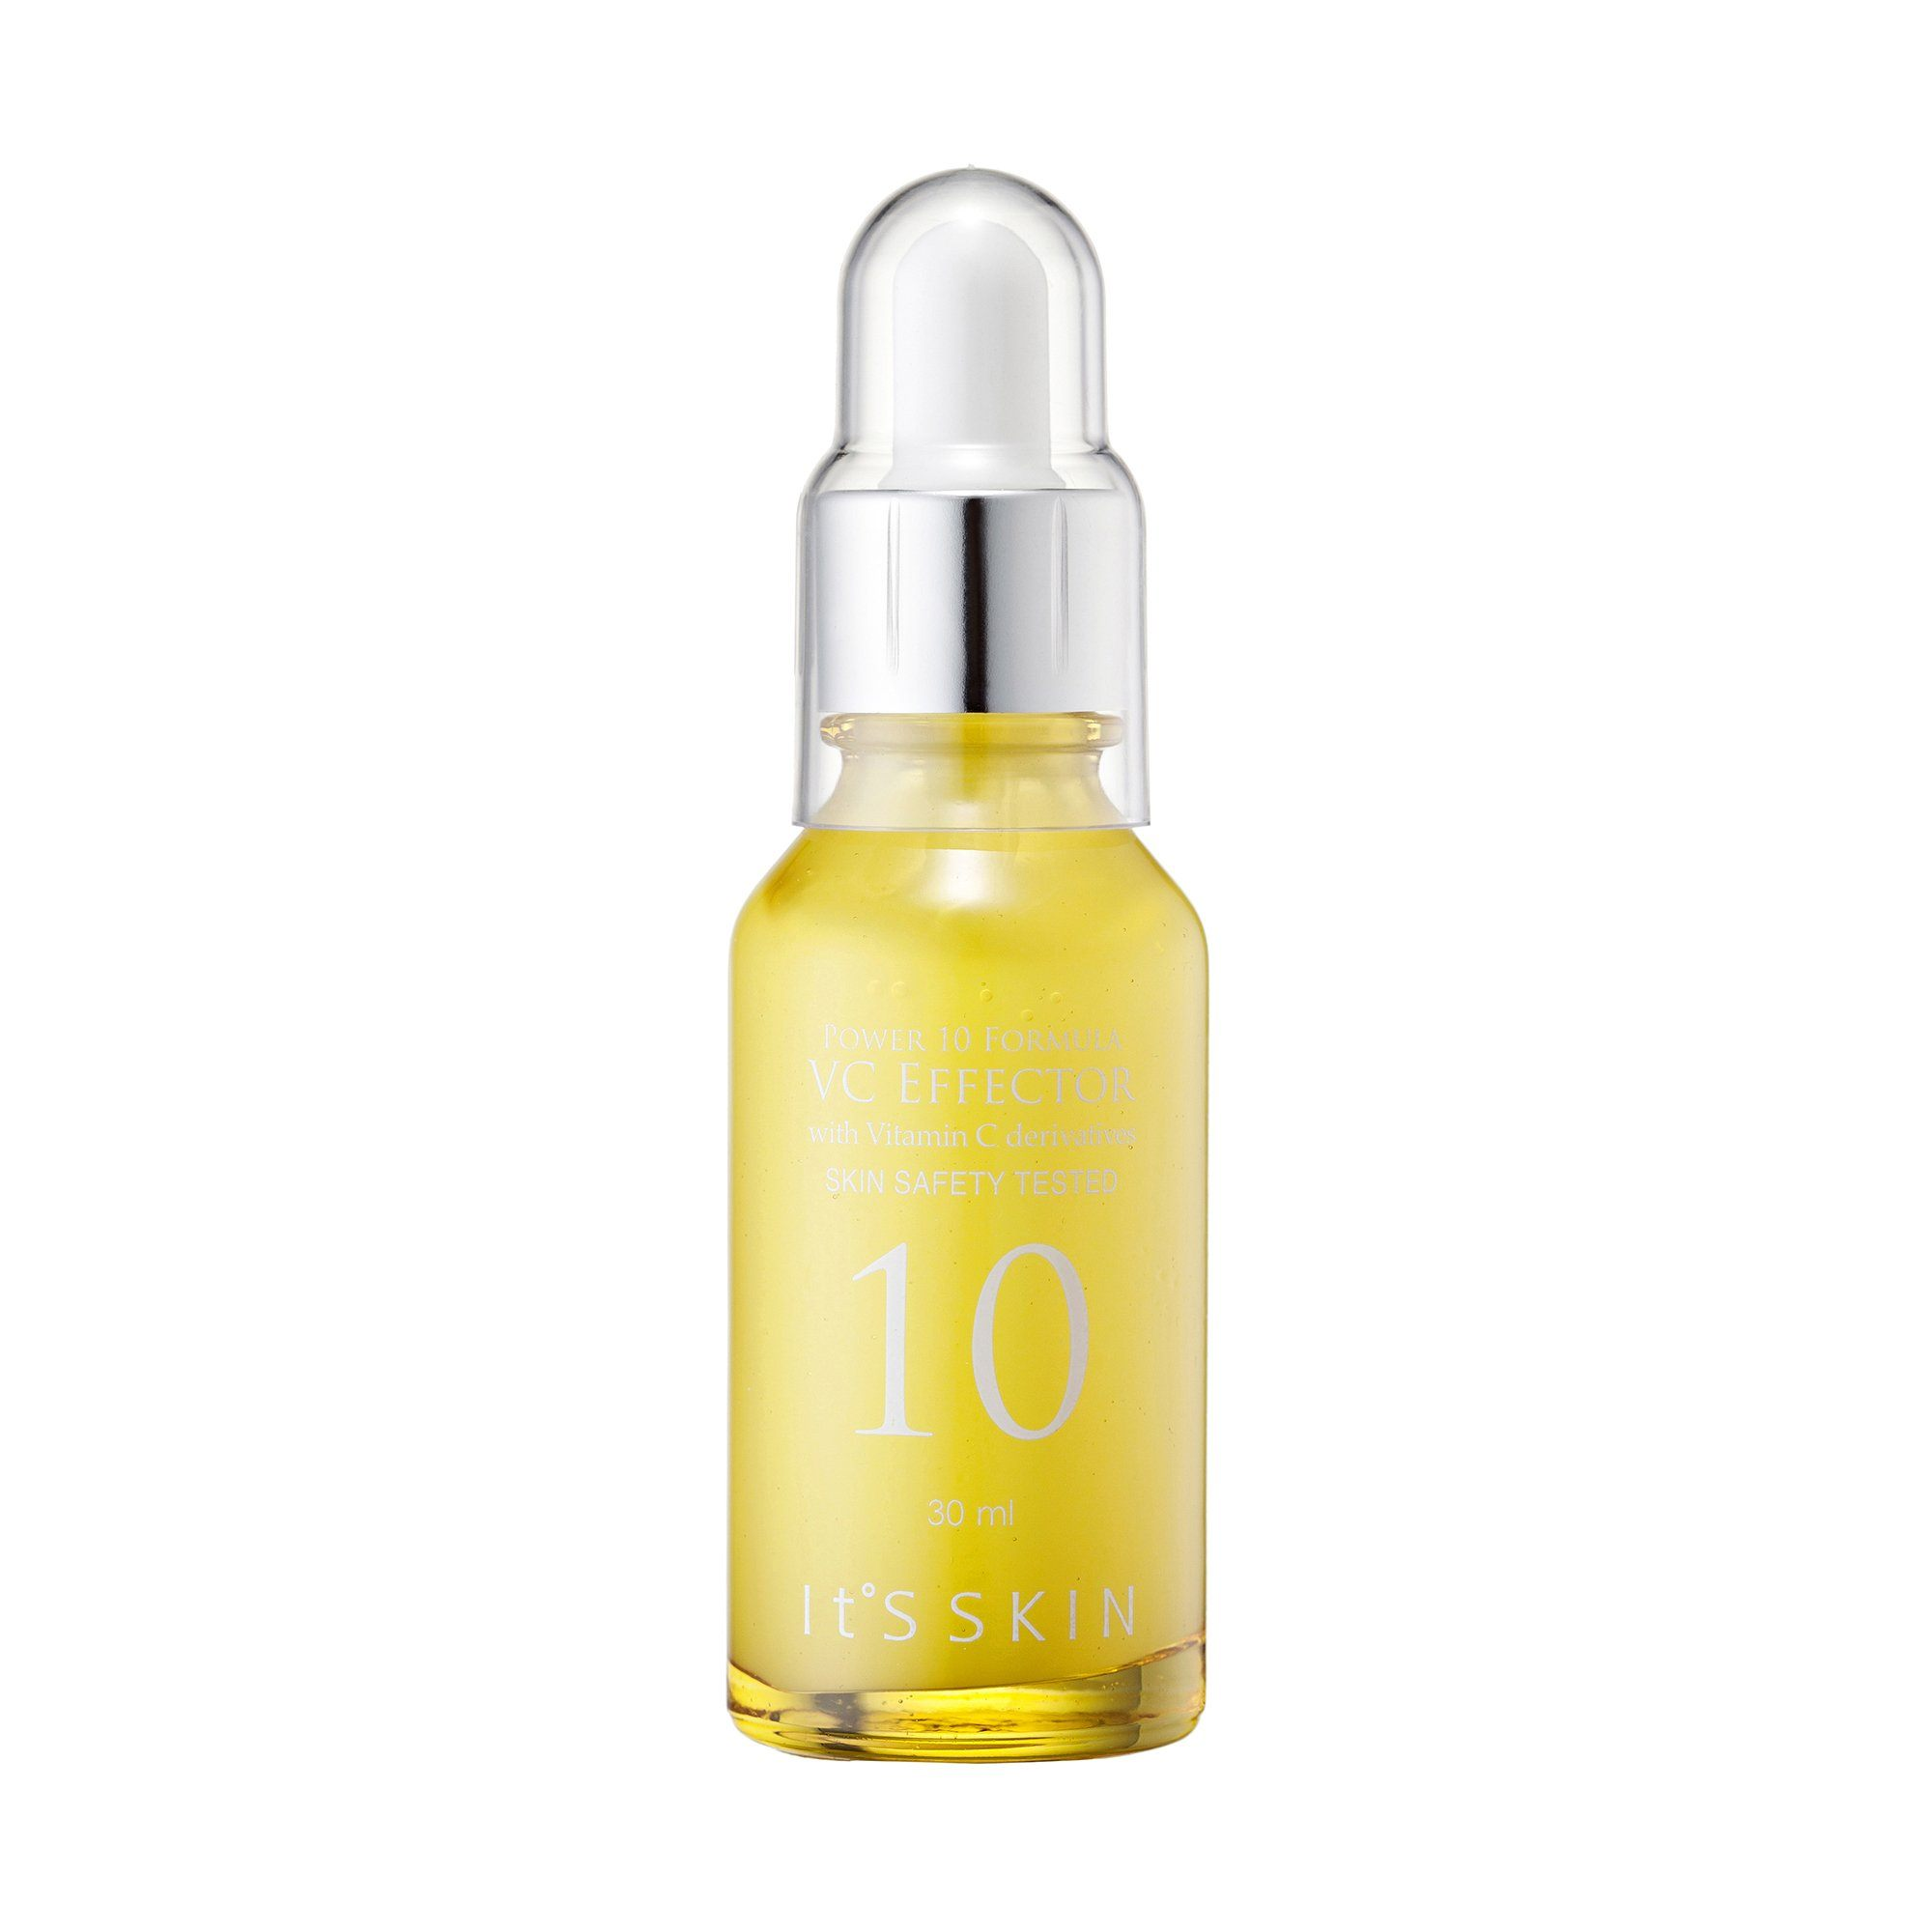 Health & Beauty > Personal Care > Cosmetics > Skin Care > Lotion & Moisturizer - Power 10 Formula VC Effector Serum Do Twarzy 30 Ml